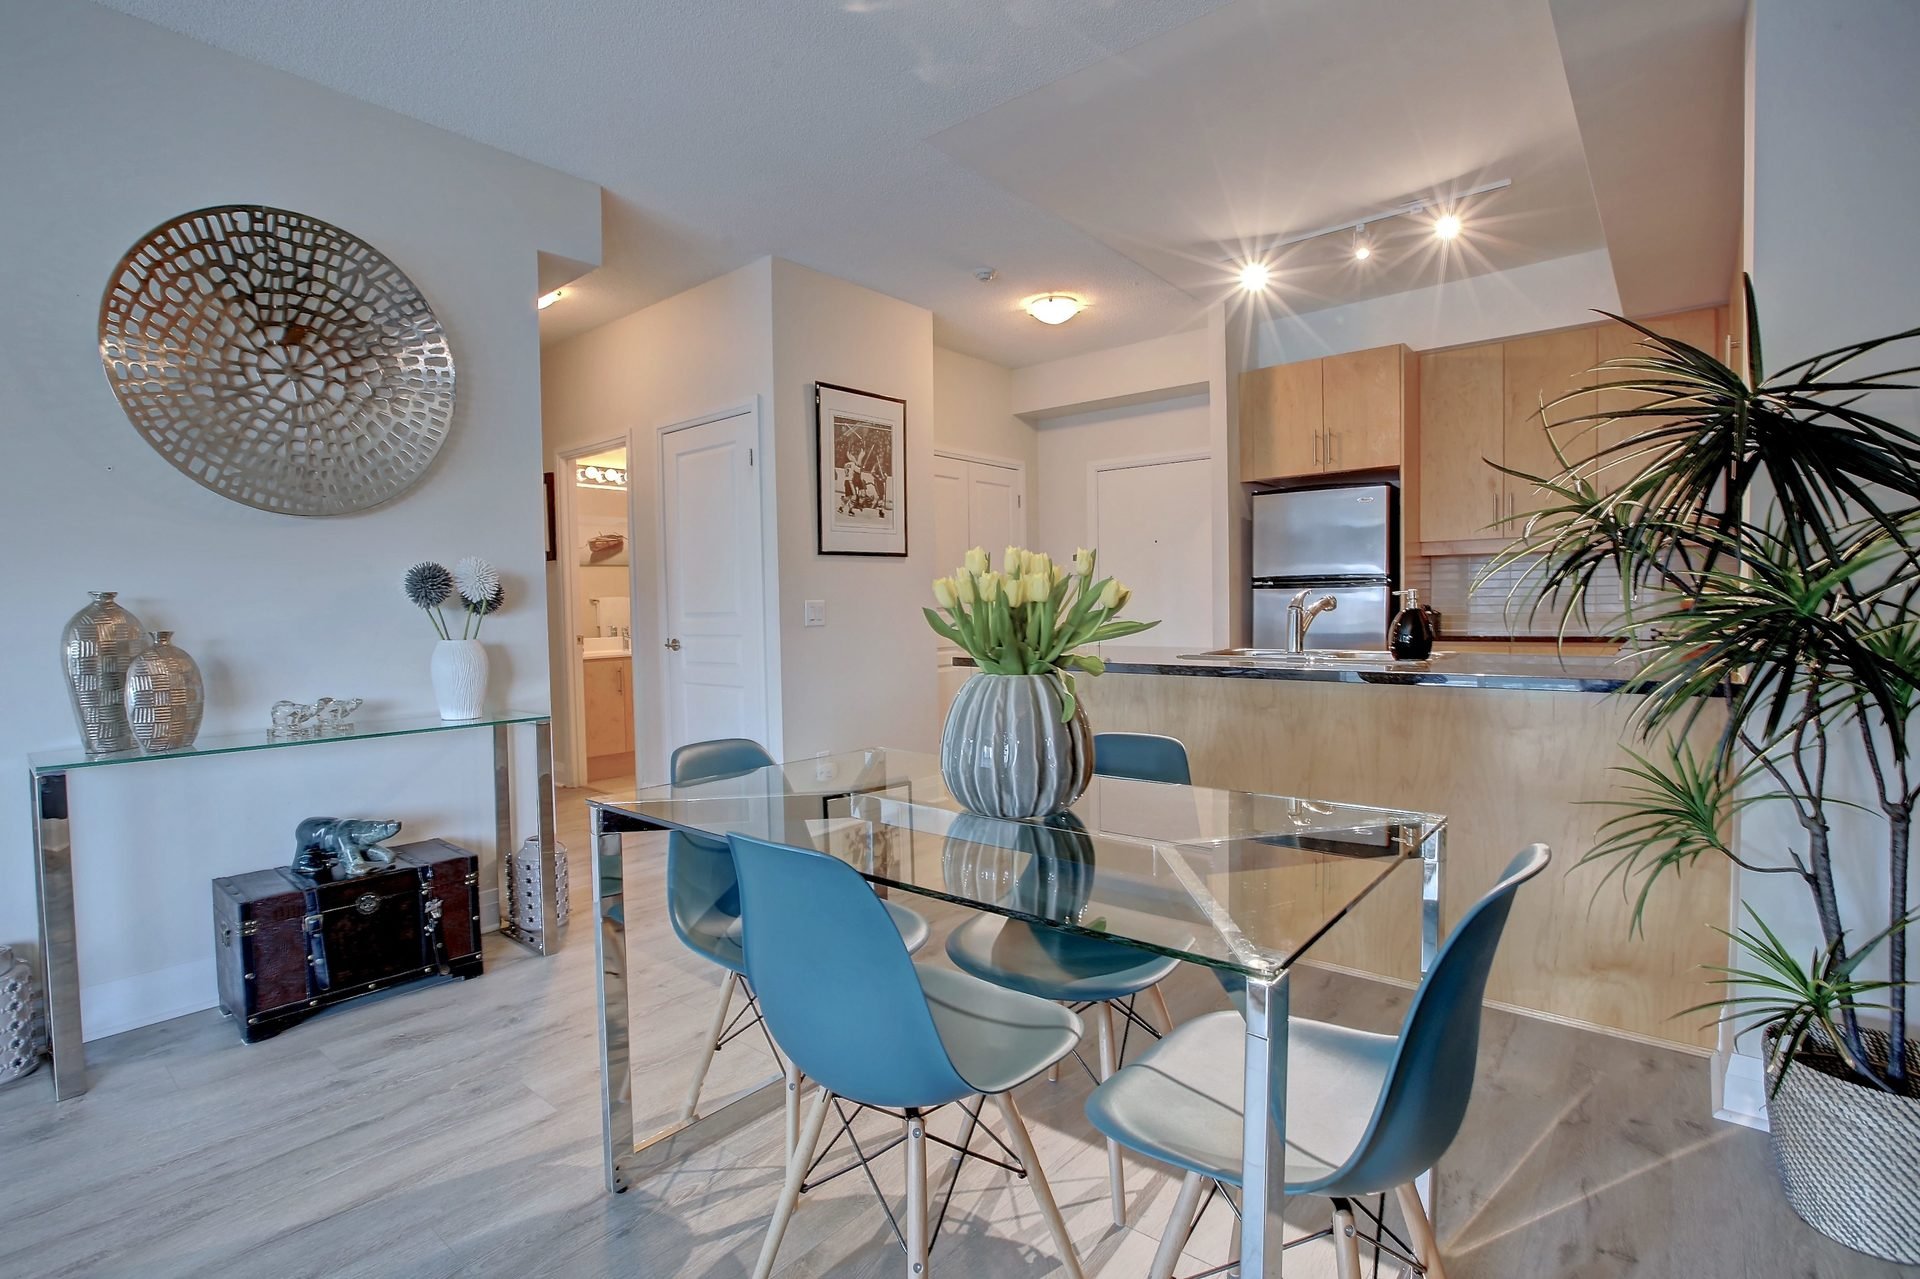 206-1 Hurontario St-Open Concept Dining/Kitchen at 206 - 1 Hurontario Street, Port Credit, Mississauga